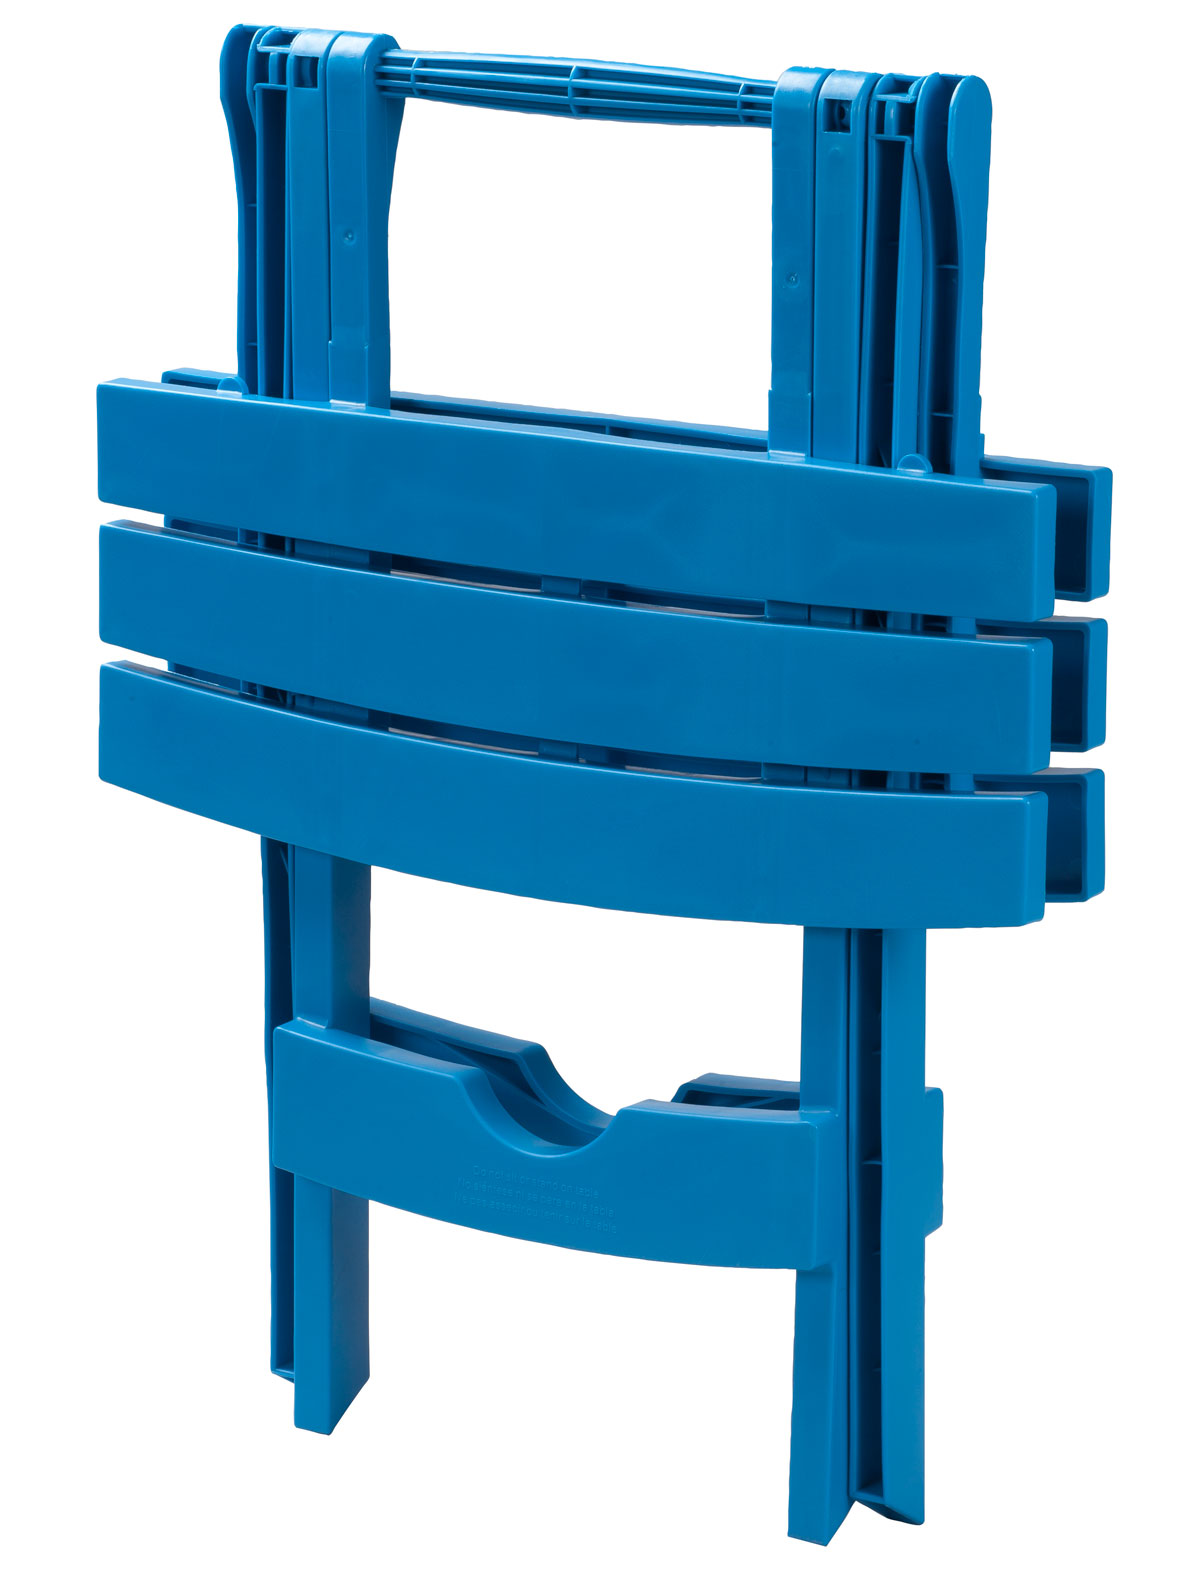 Adams Manufacturing Quik Fold Side Table, Pool Blue Image 2 Of 5